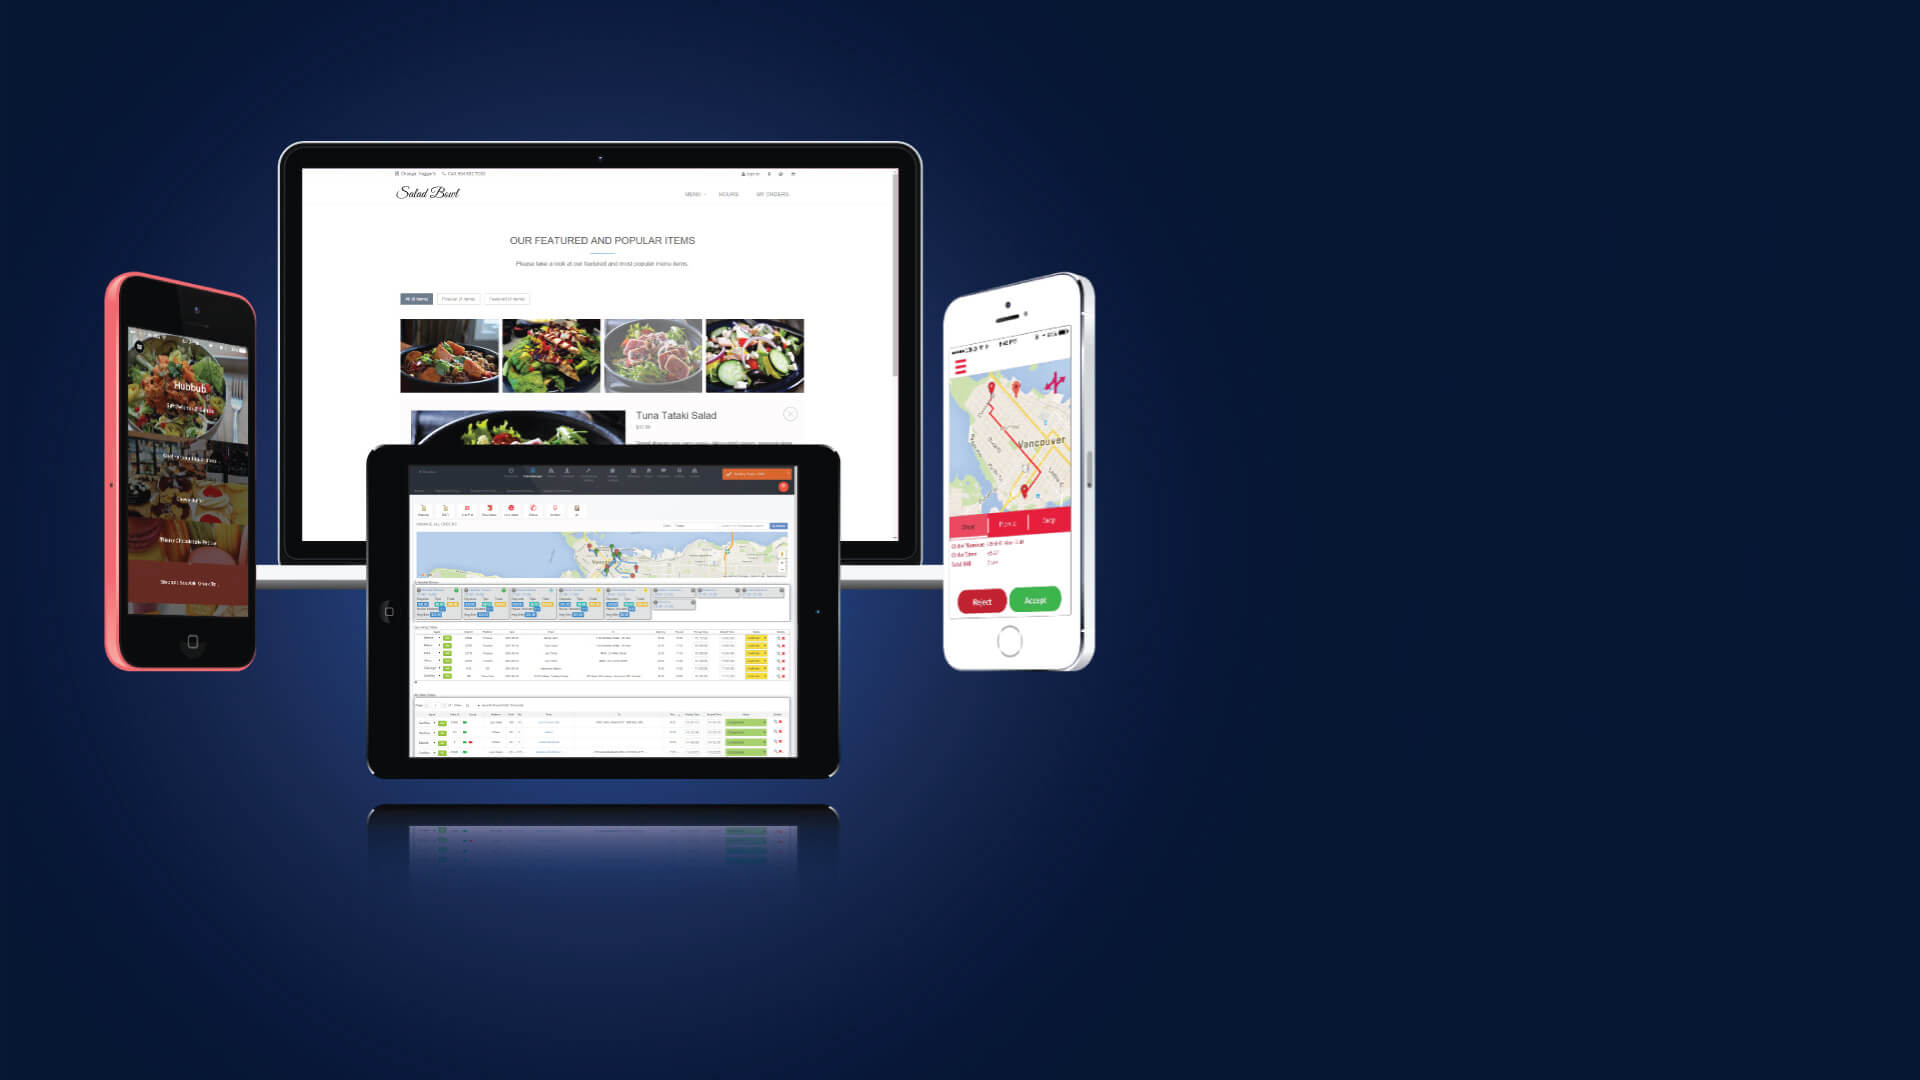 Daily Delivery's full product suite displayed on mobile, tablet and web platforms.